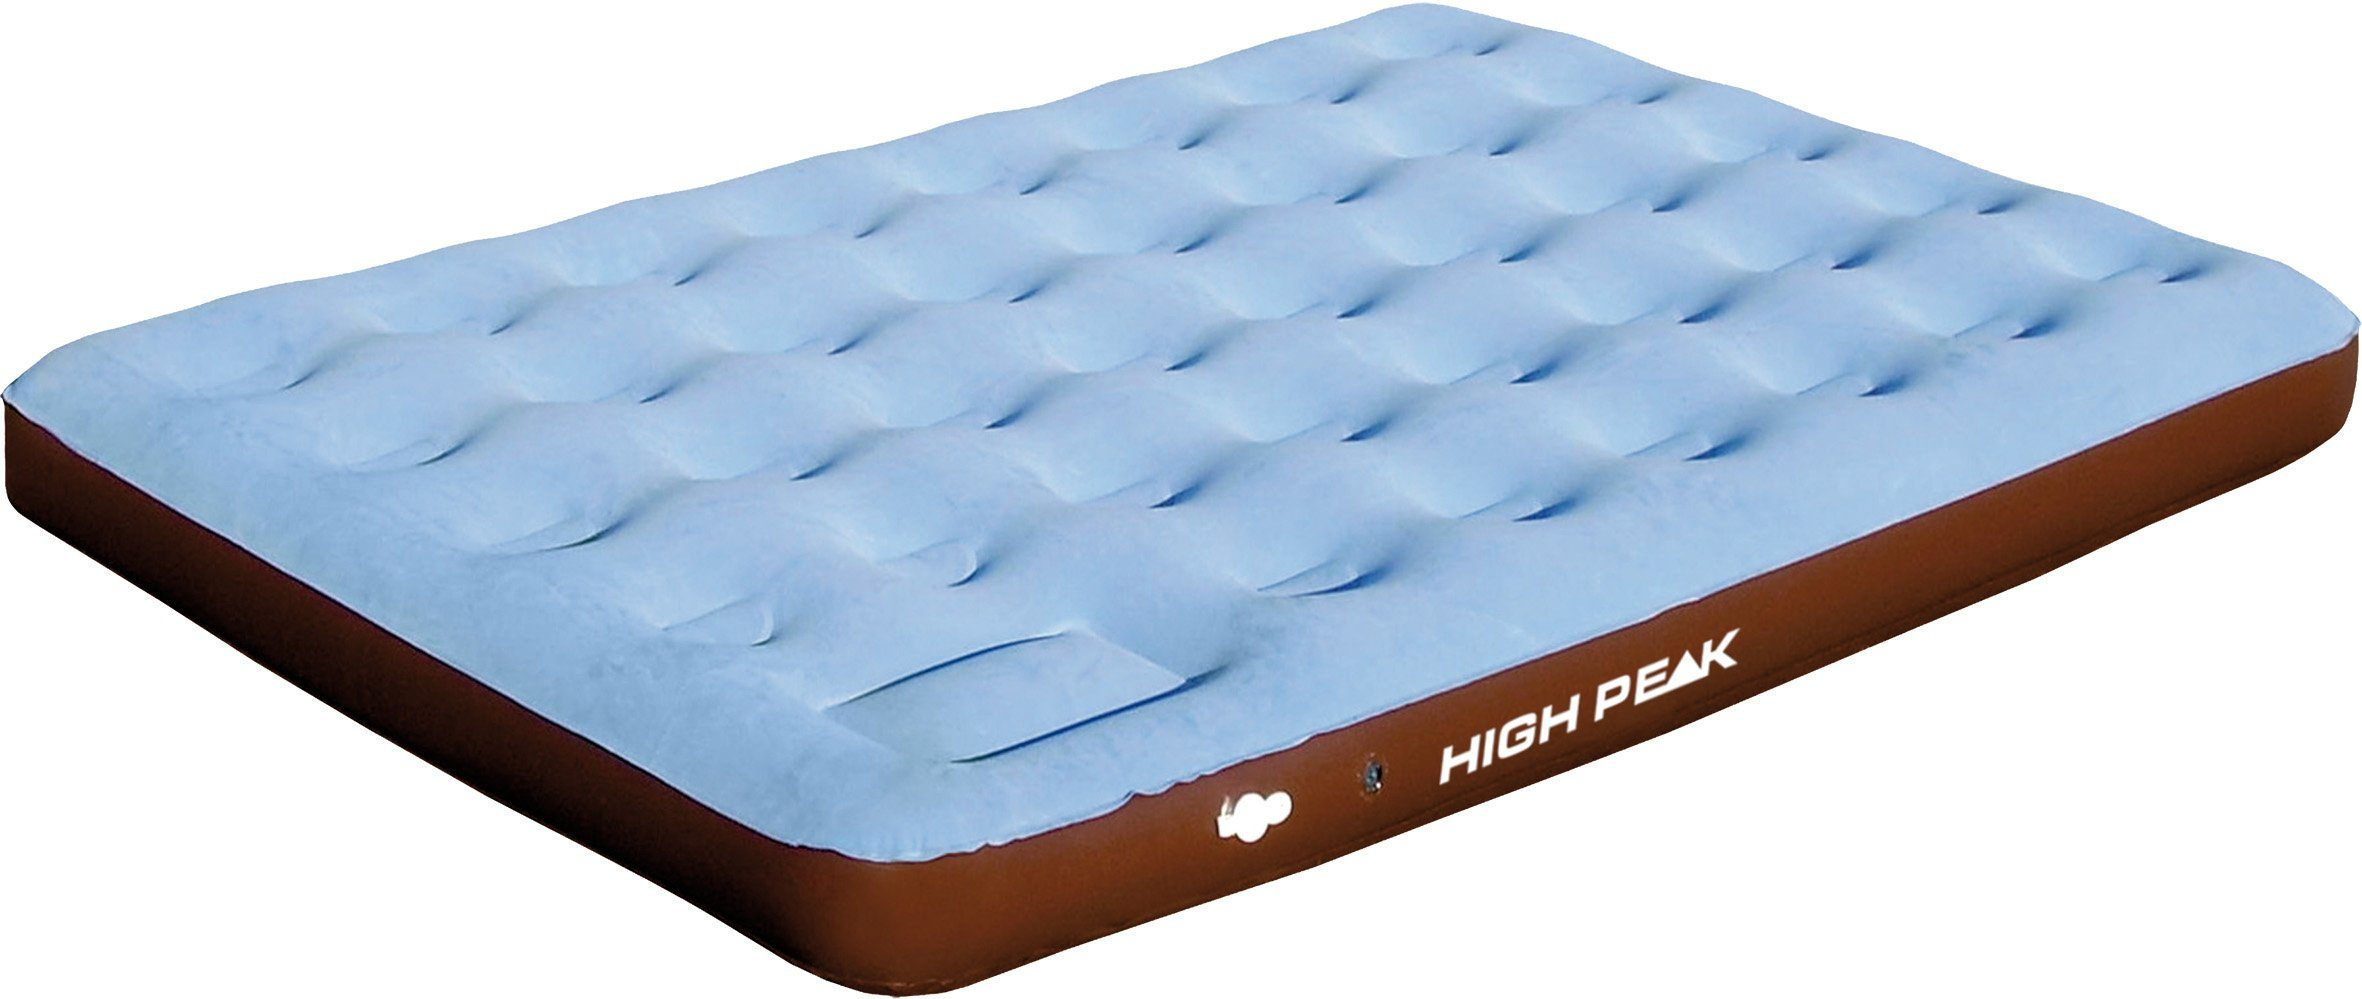 High Peak Luftbett, »Double Comfort Plus extra long«